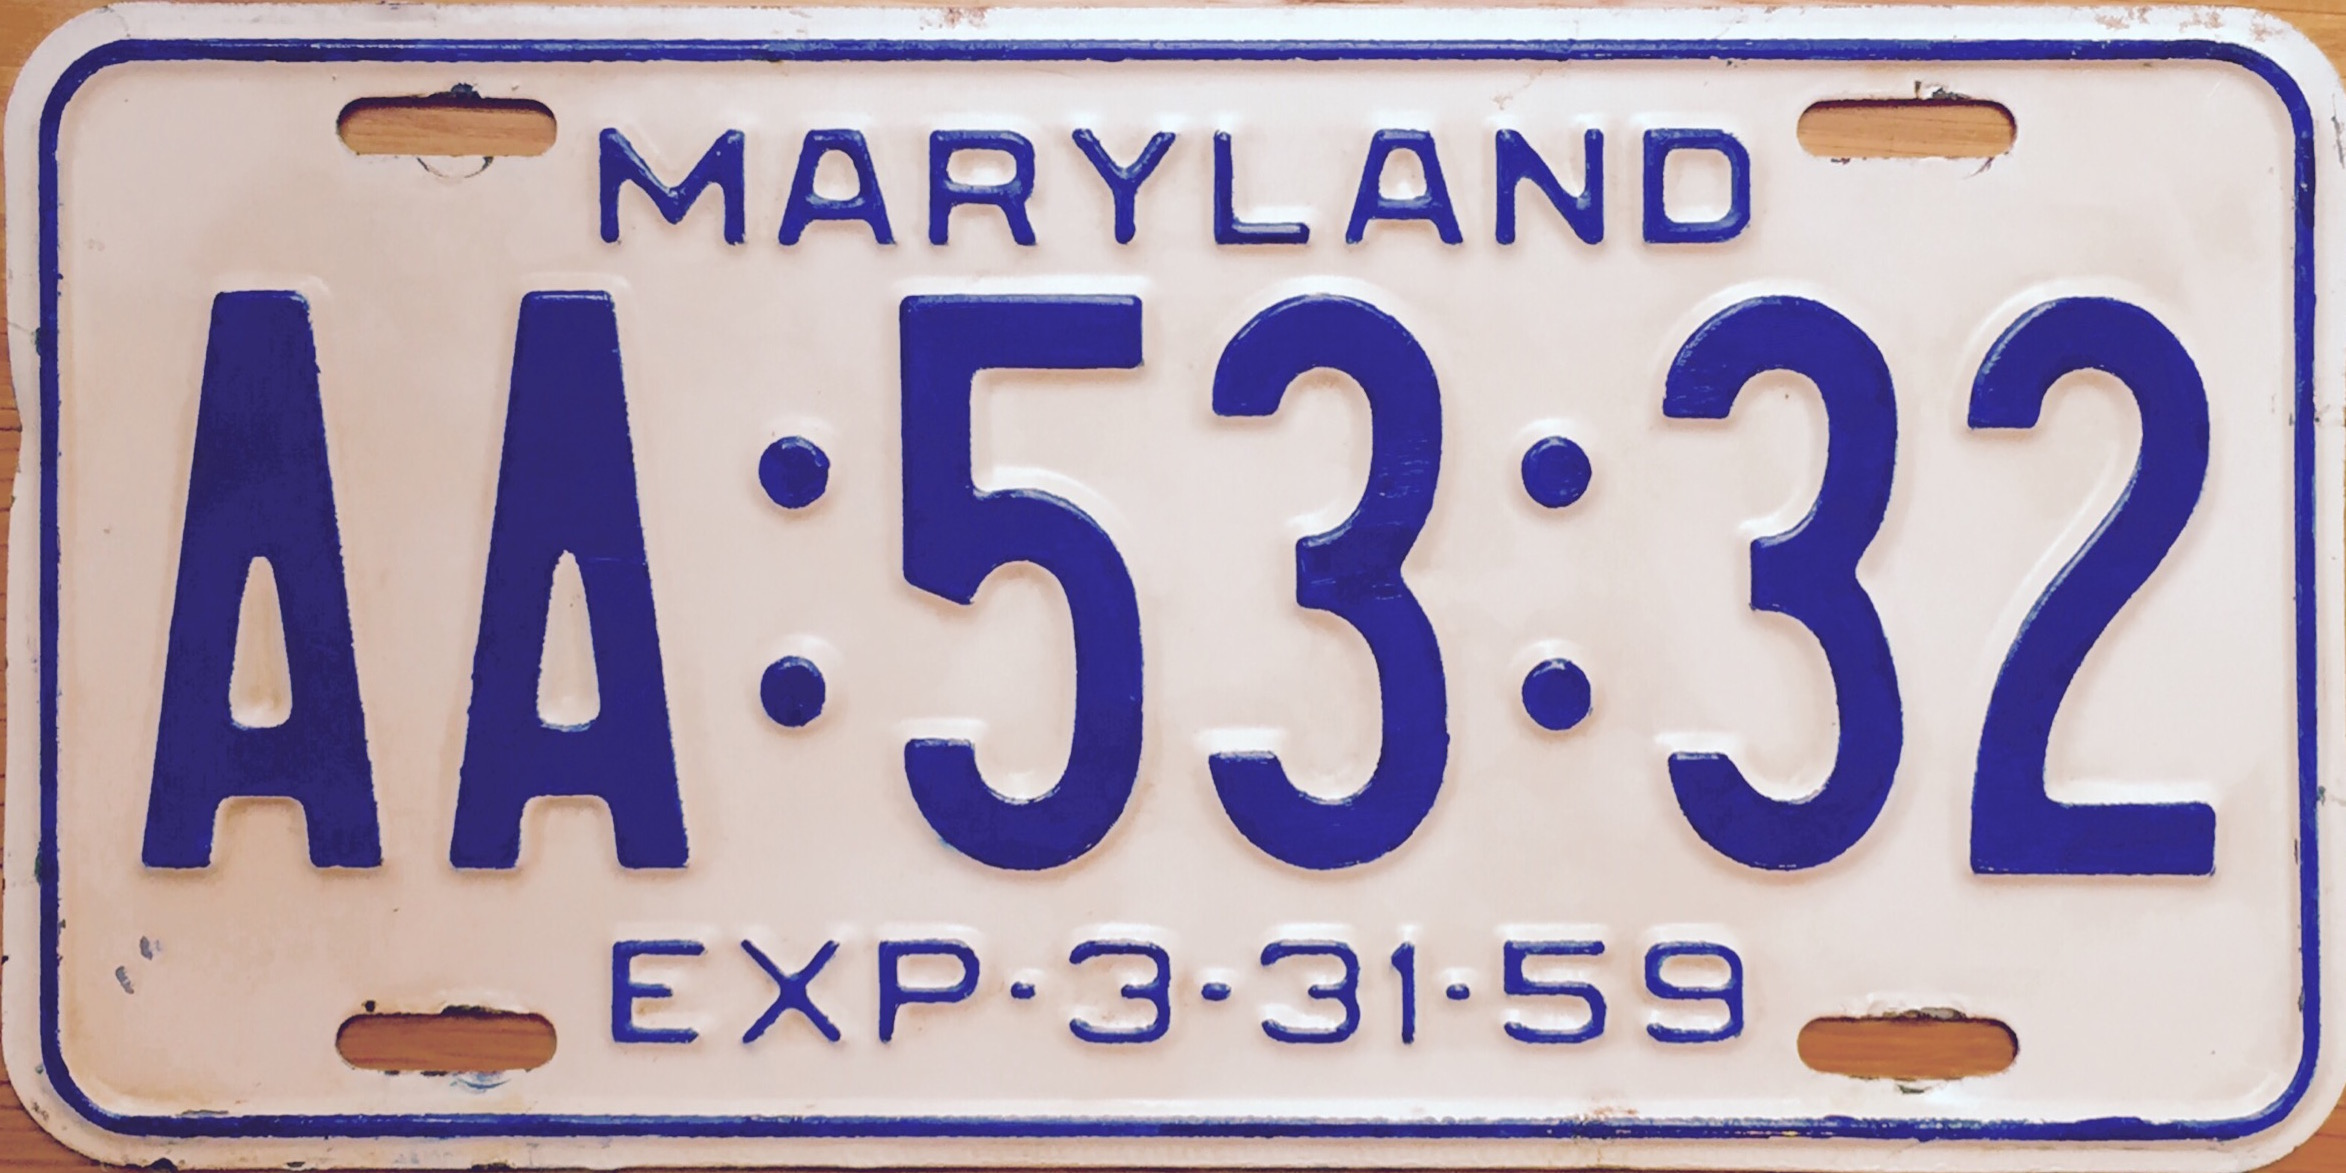 File:1958-59 Maryland license plate.jpg - Wikipedia